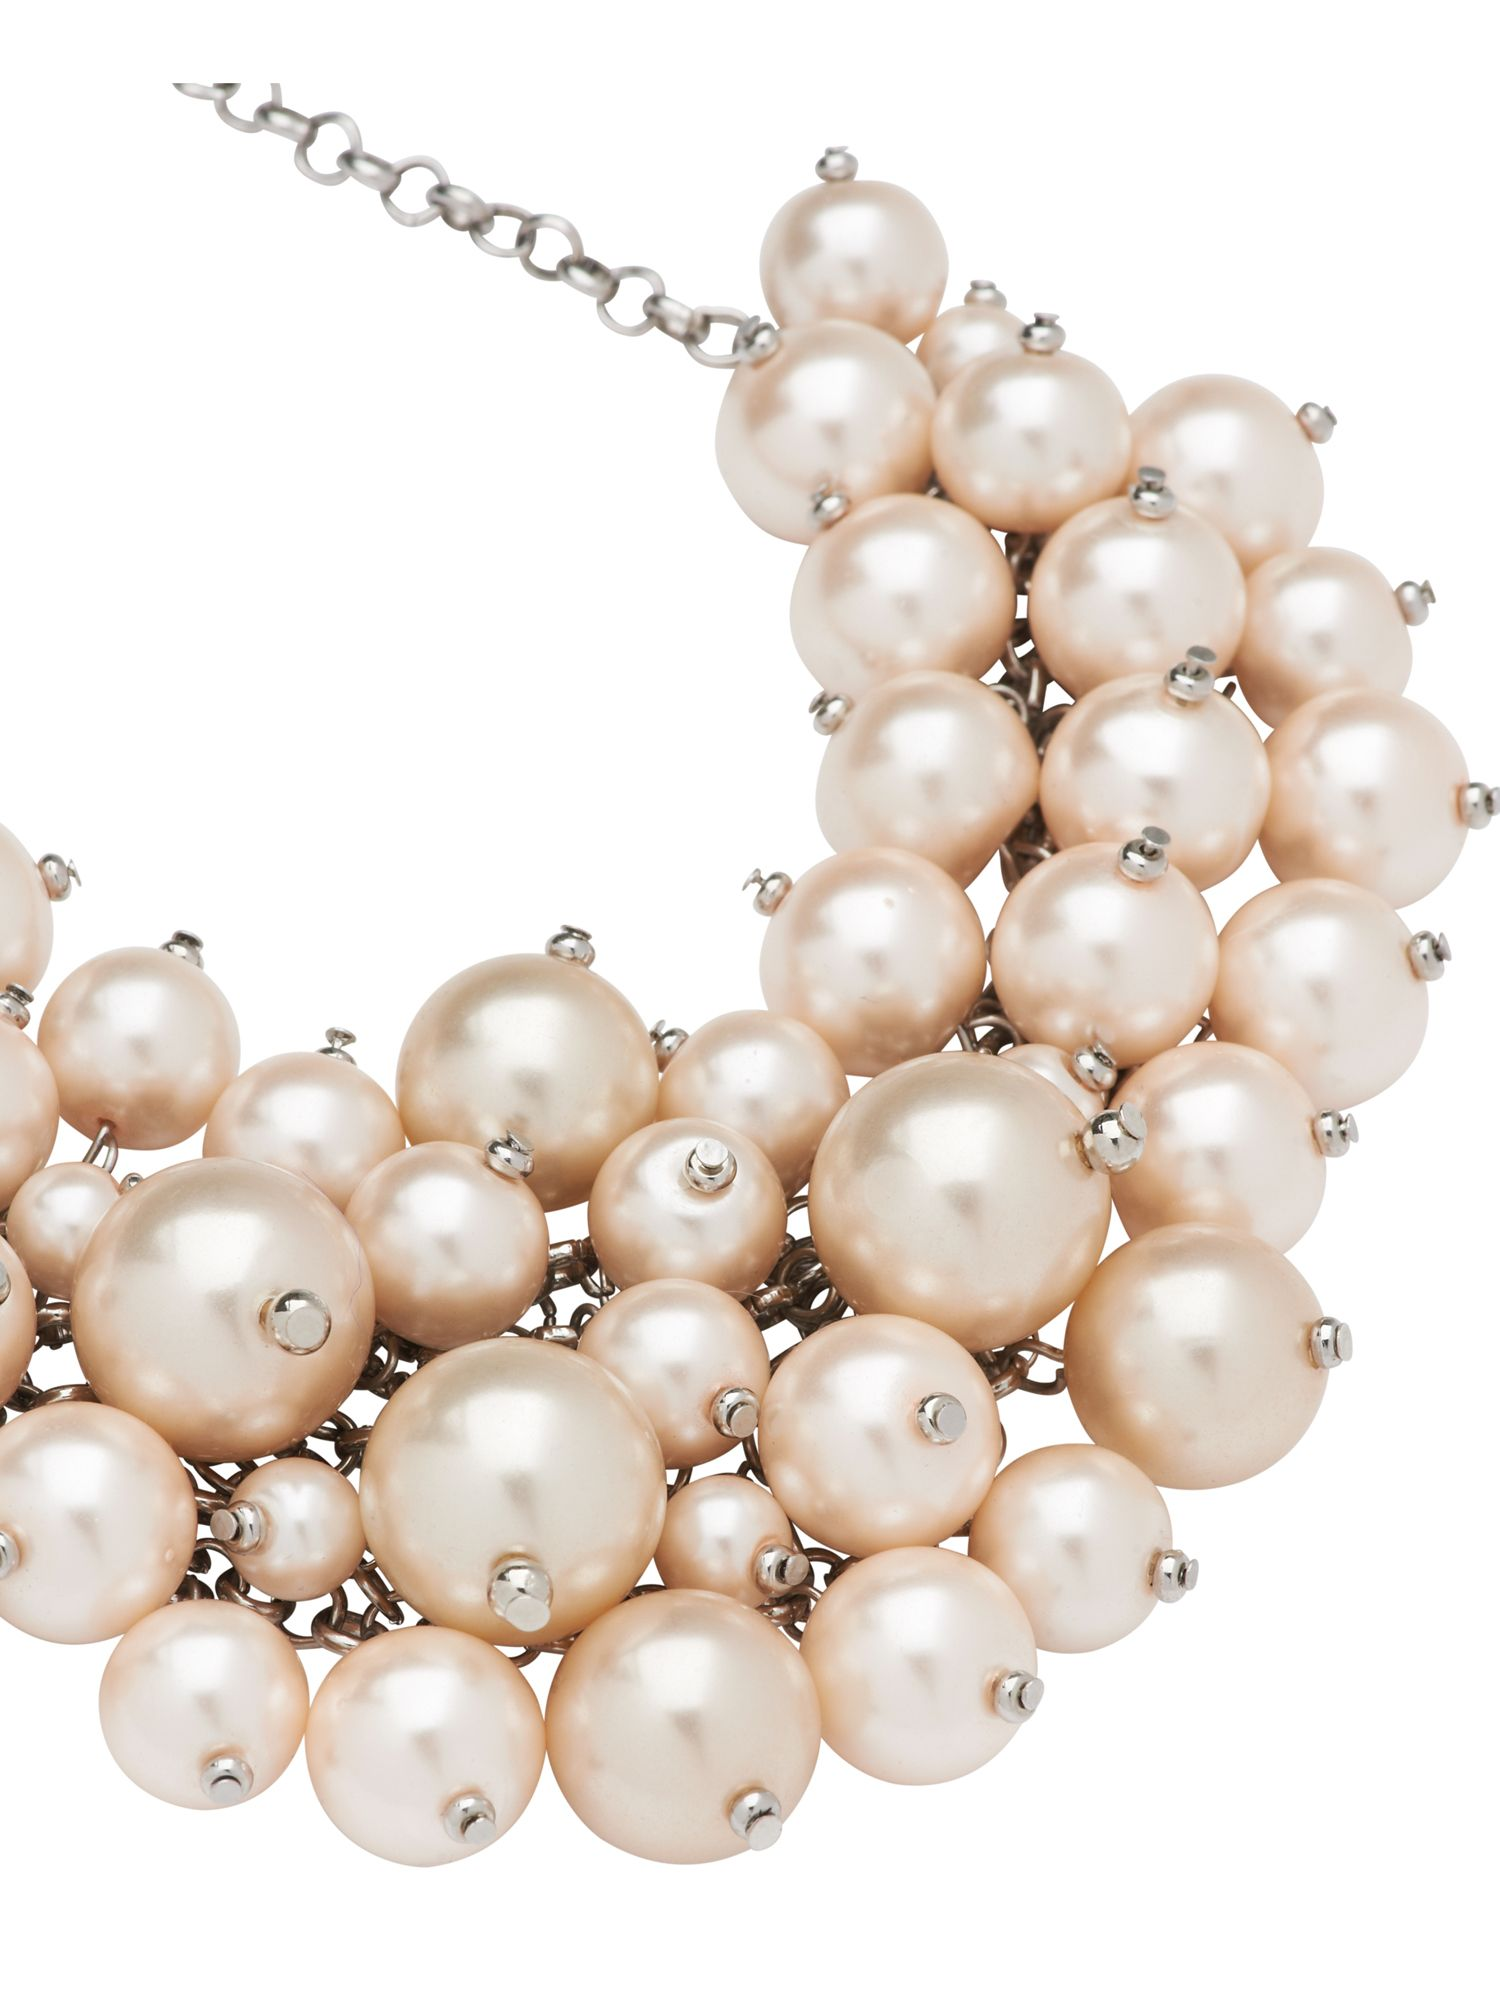 Pearl cluster bib necklace